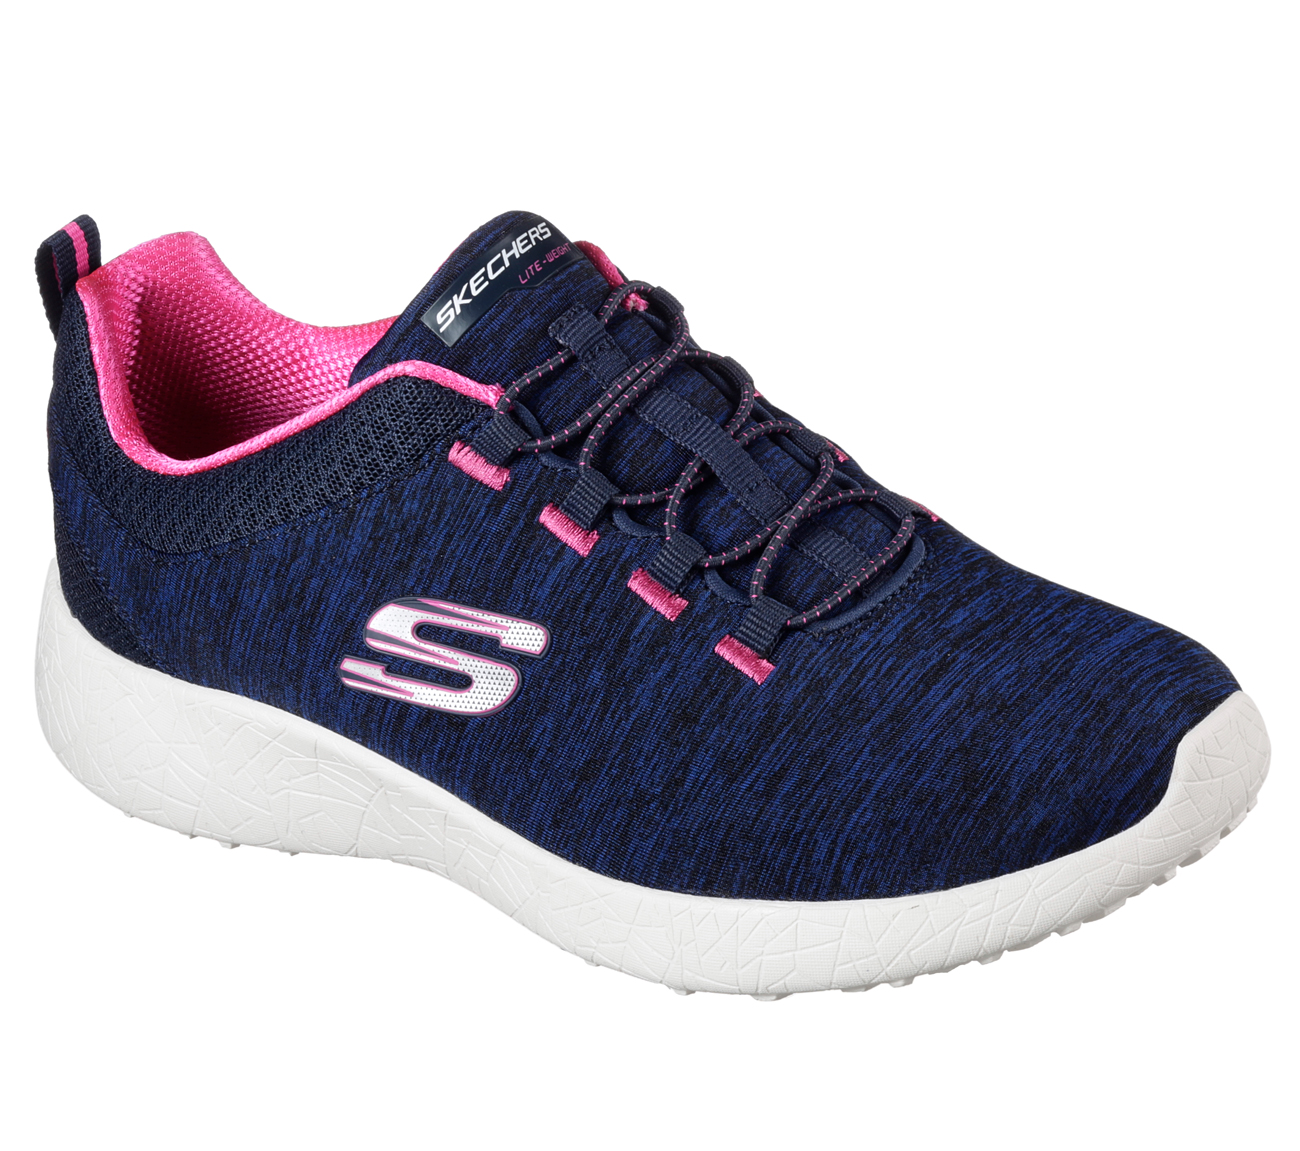 e770cd17a0f Skechers Azules Mujer poker-pai-gow.es